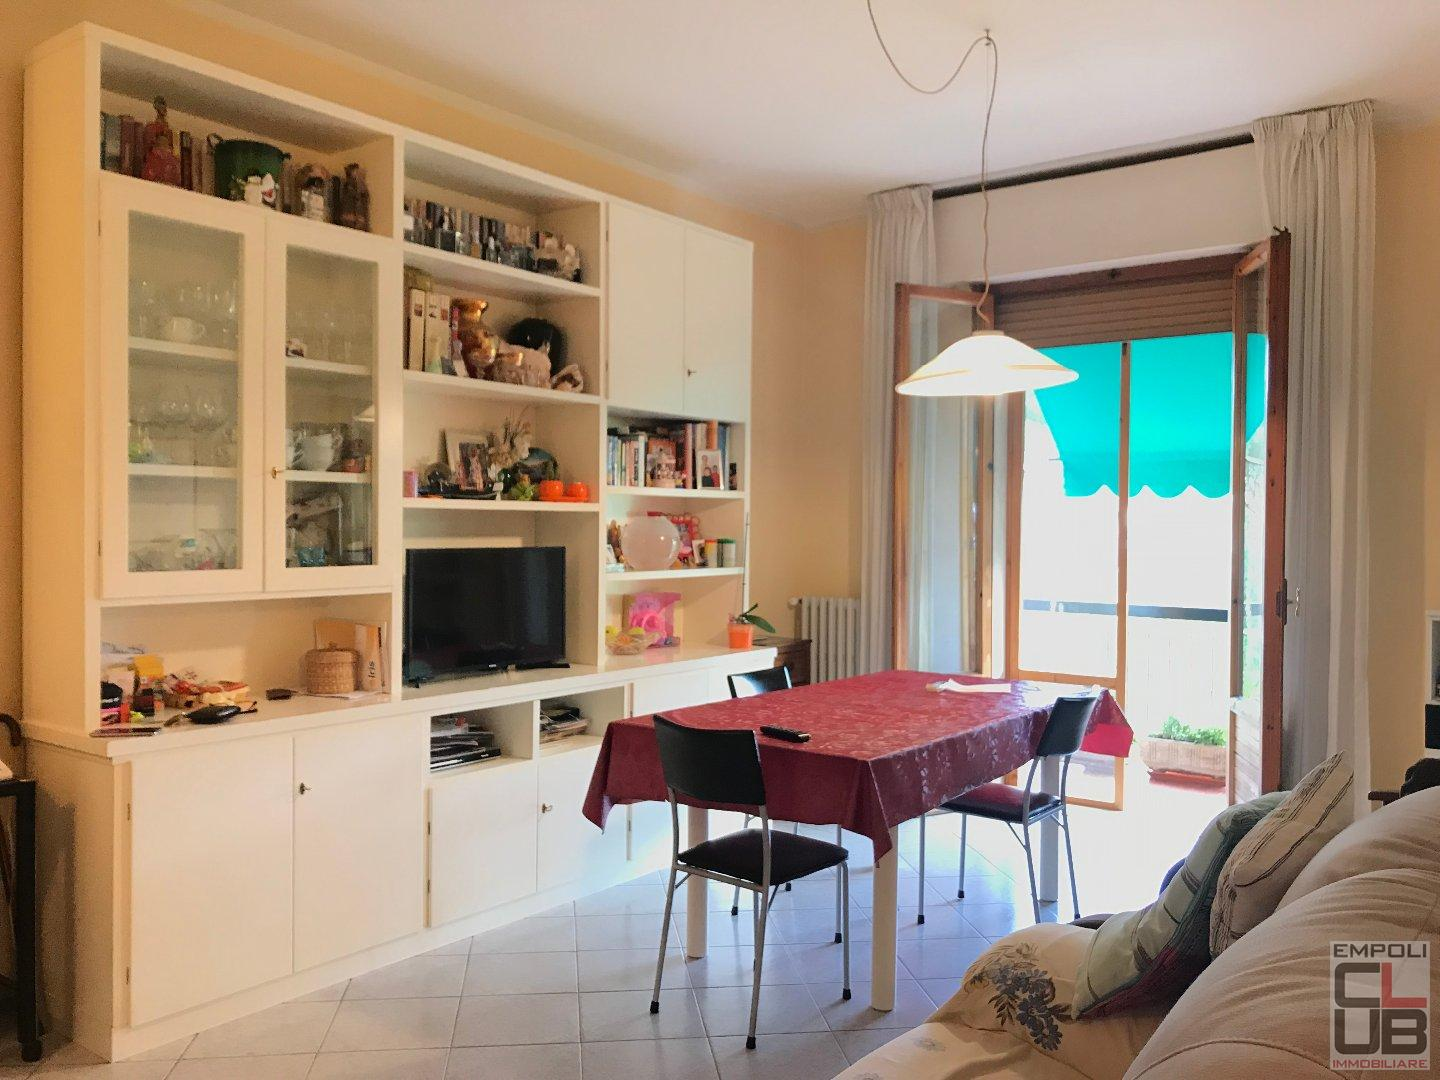 Apartment for sale in Vinci (FI)